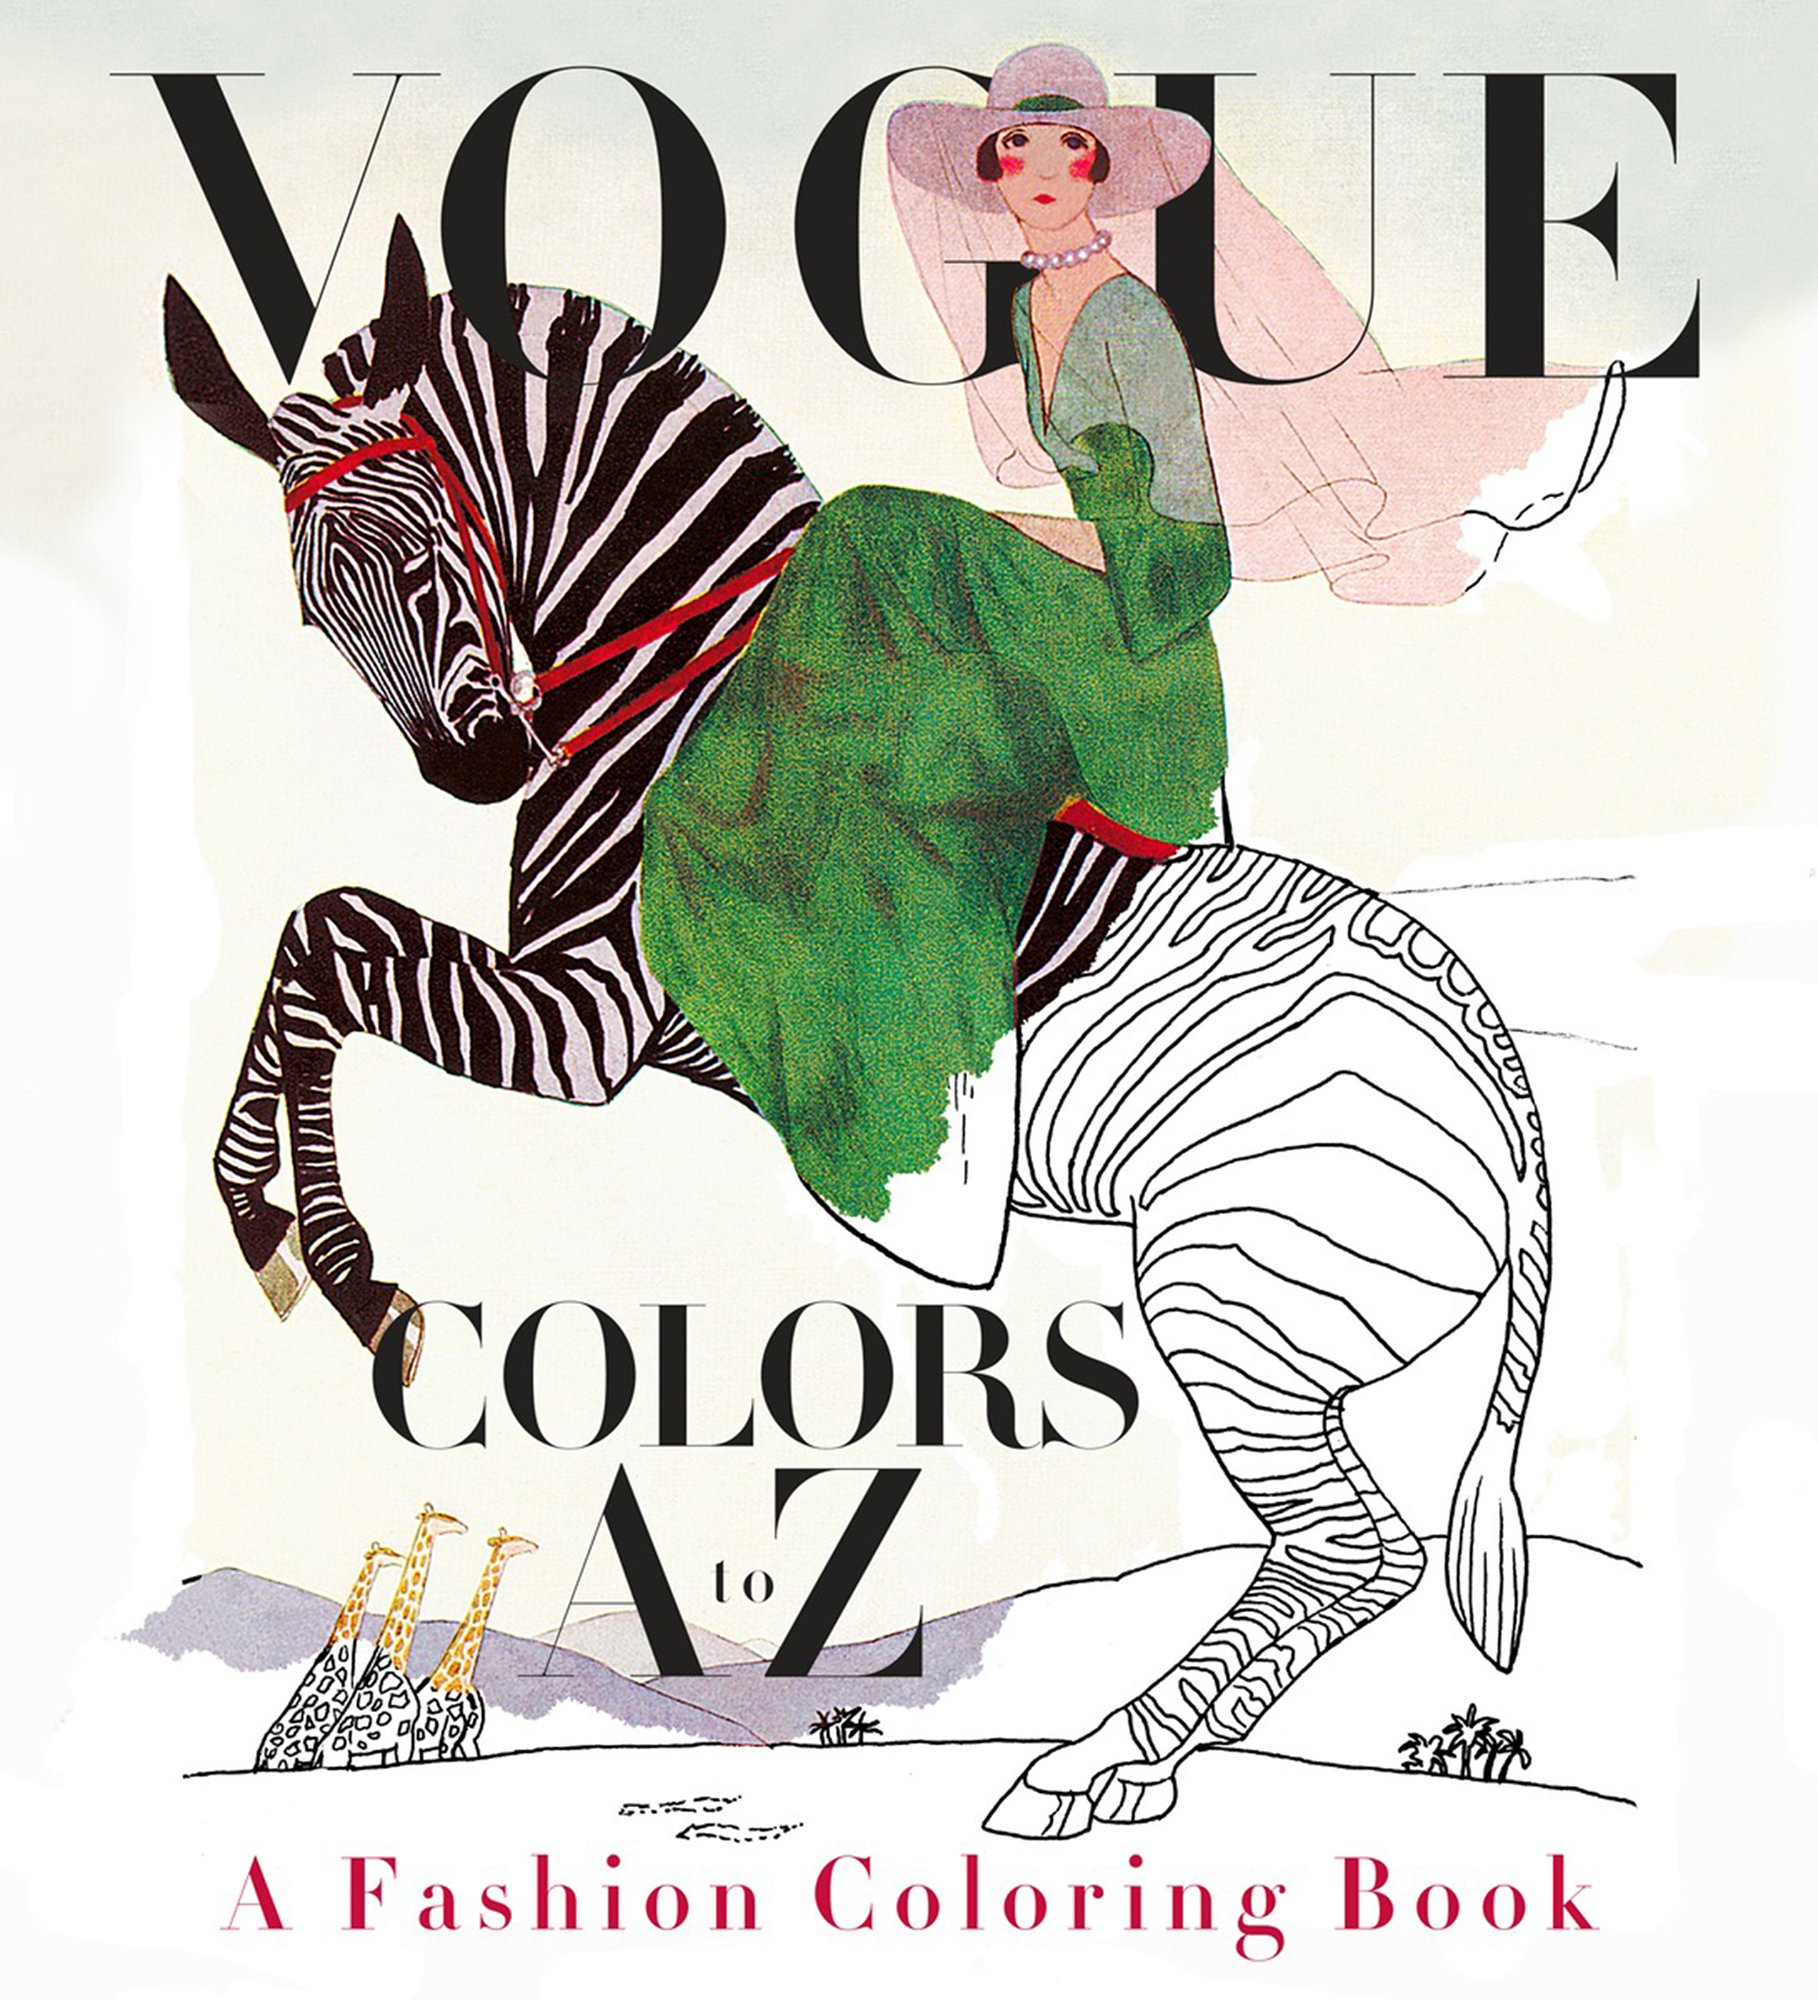 vogue-coloring-book-cover2